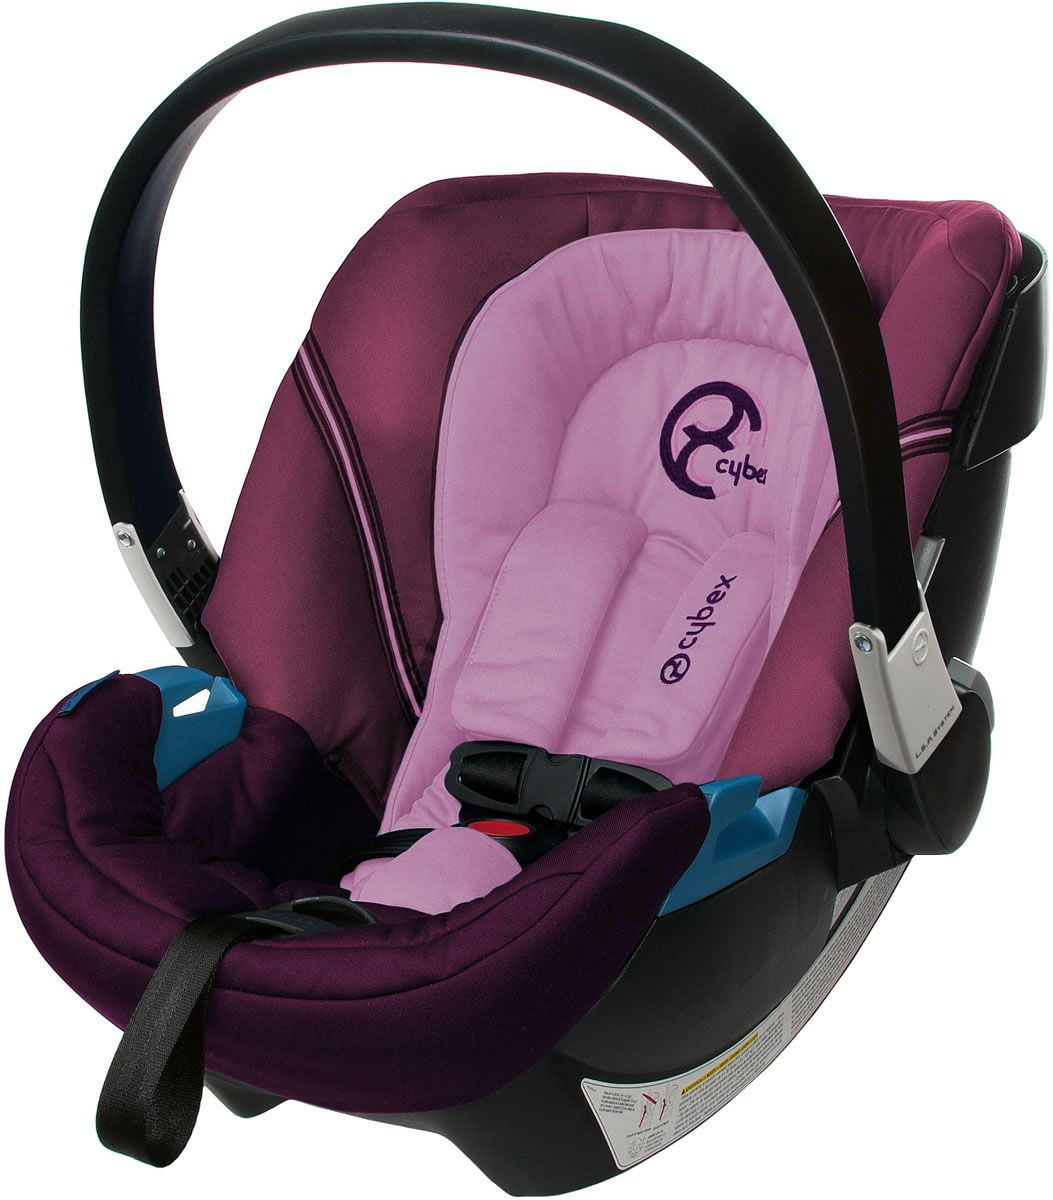 Cybex Aton 2 Infant Car Seat 2013 Violet Spring Baby Car Seats Car Seats Infant Car Seat Base